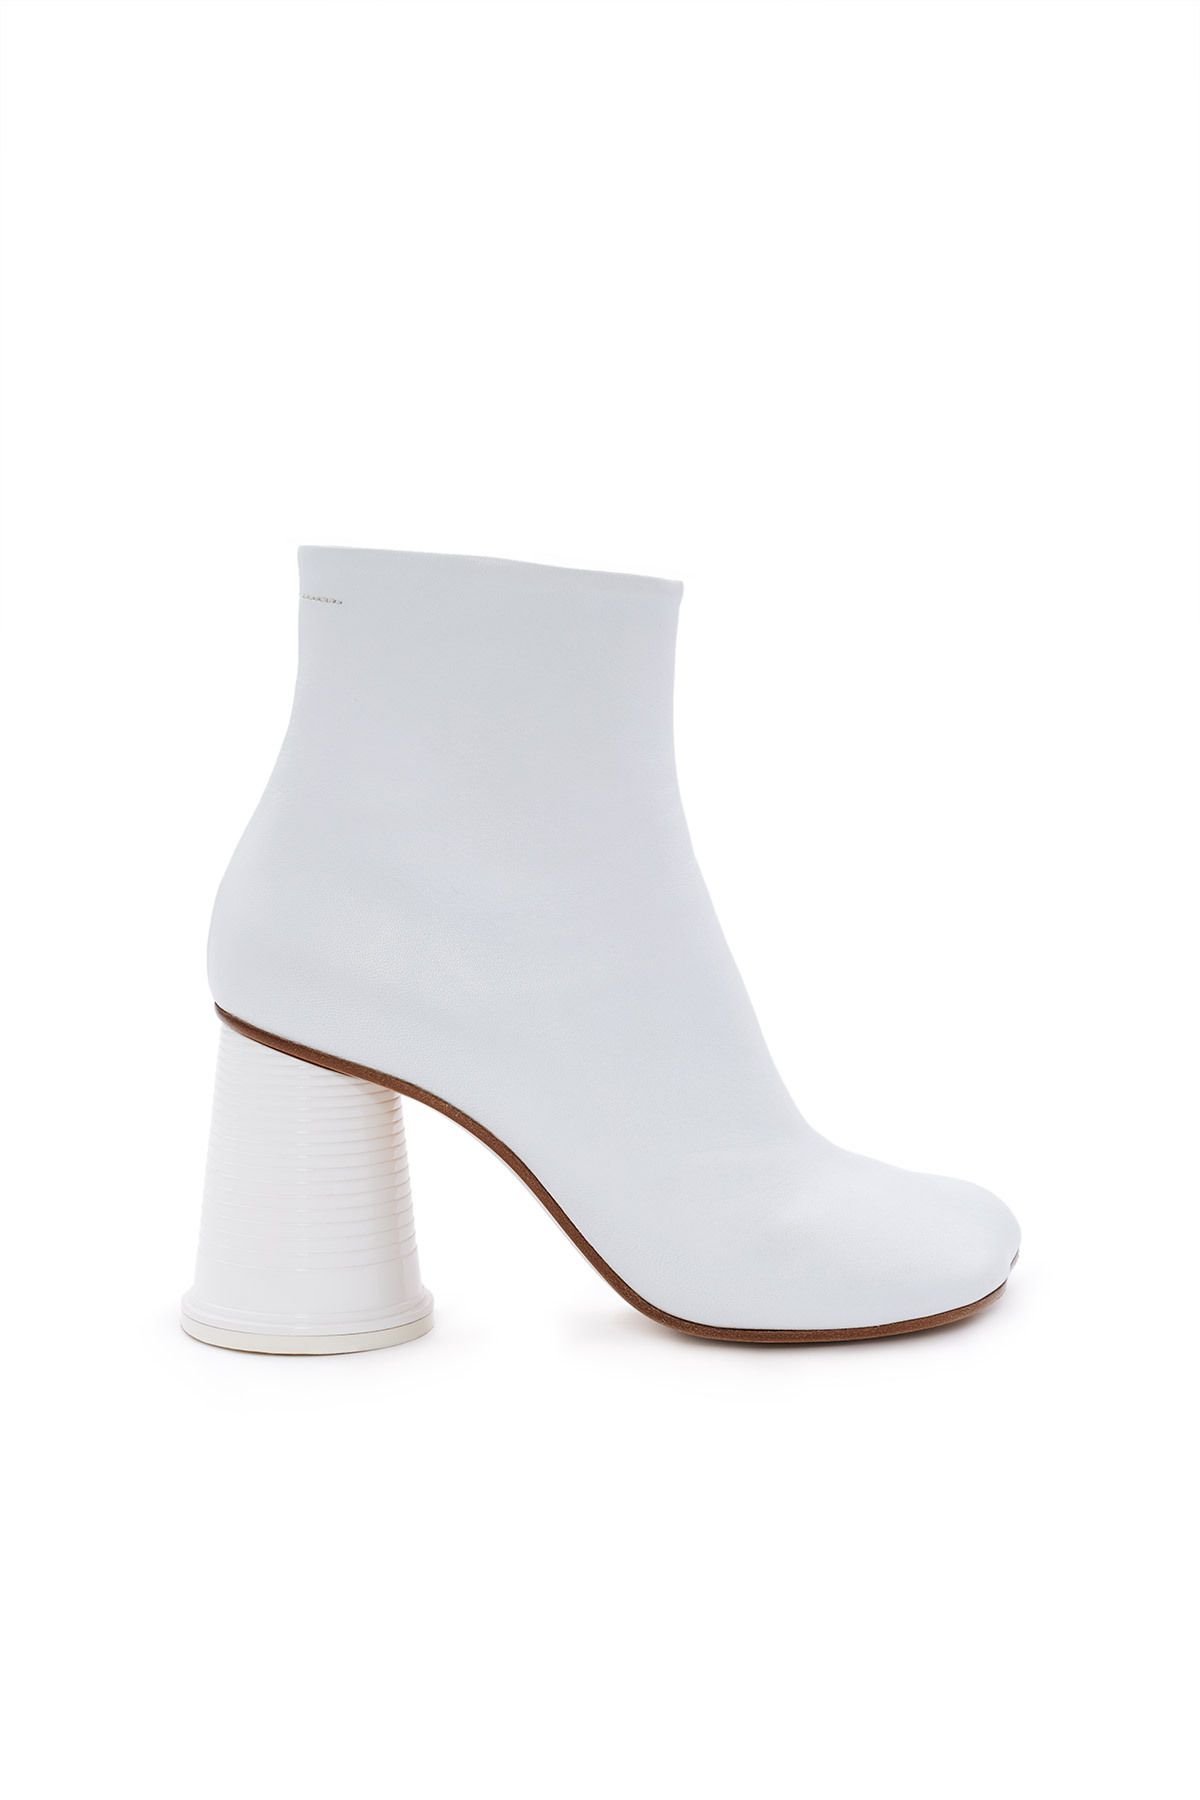 0e57793f68856 MM6 Maison Margiela, Cup Heel Ankle Boot Featuring MM6 Maison Margiela's  signature contoured toe, this all-white leather boot comes with the  season's ...